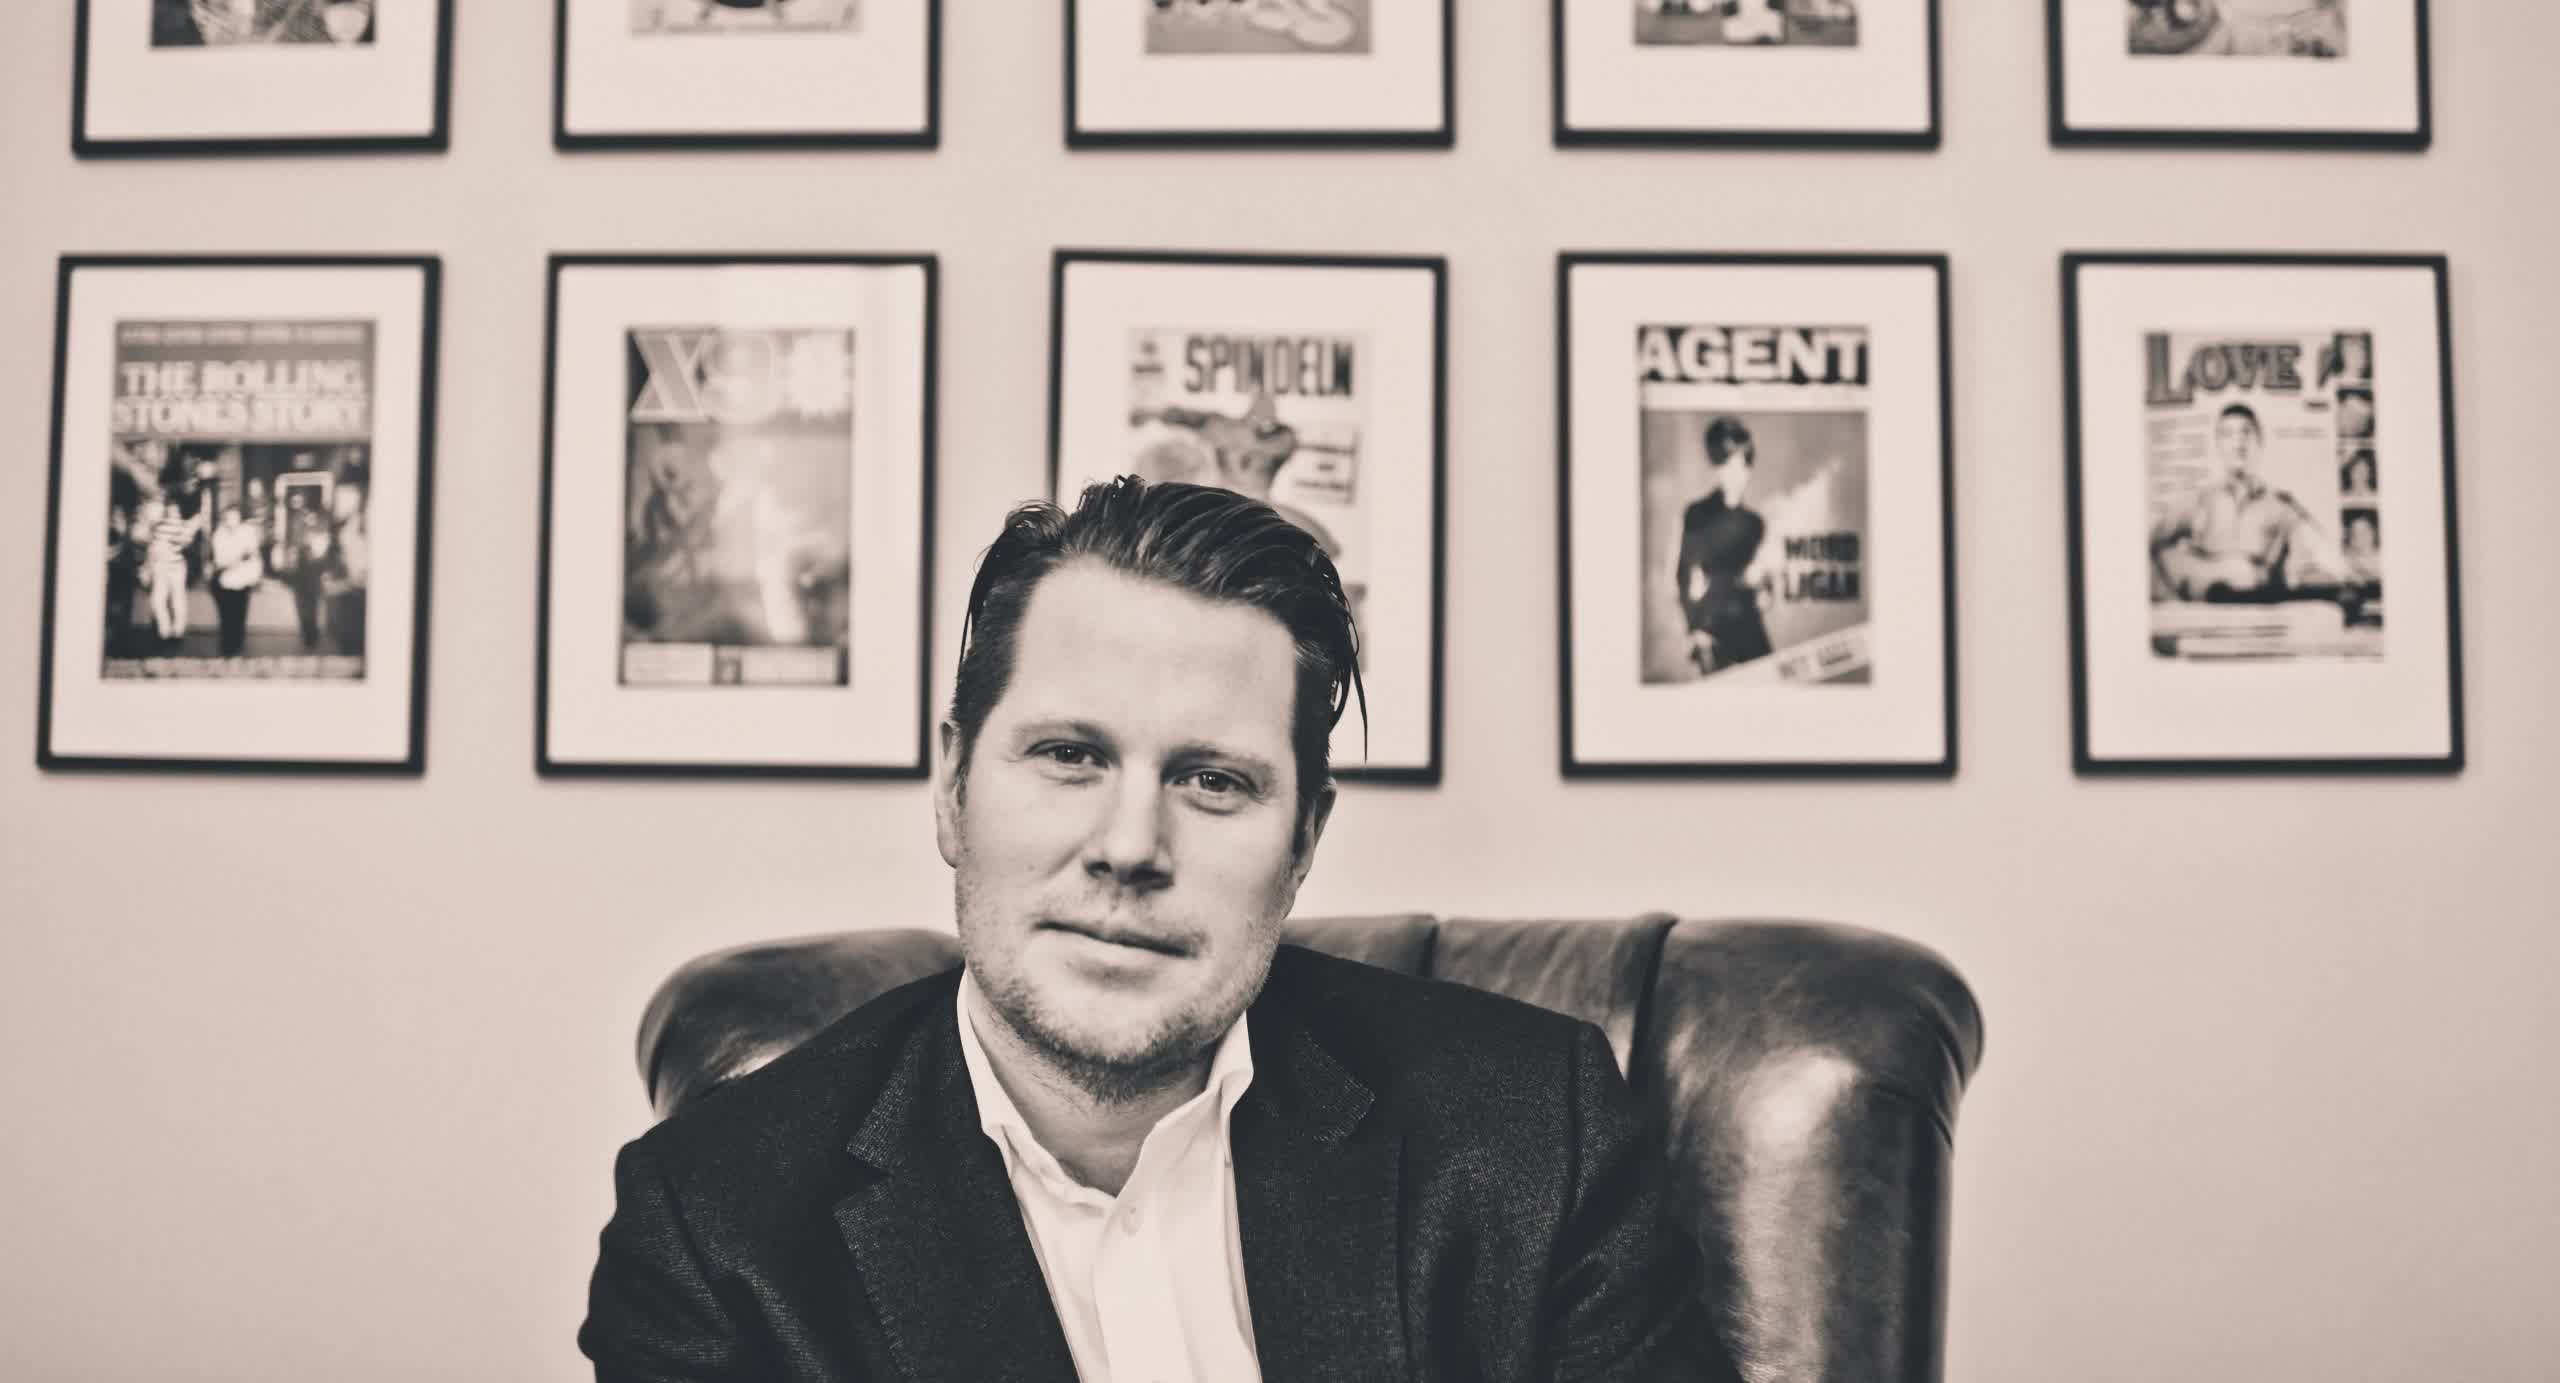 Swedish video game CEO watches his wealth nearly double to $2.4B in just a year